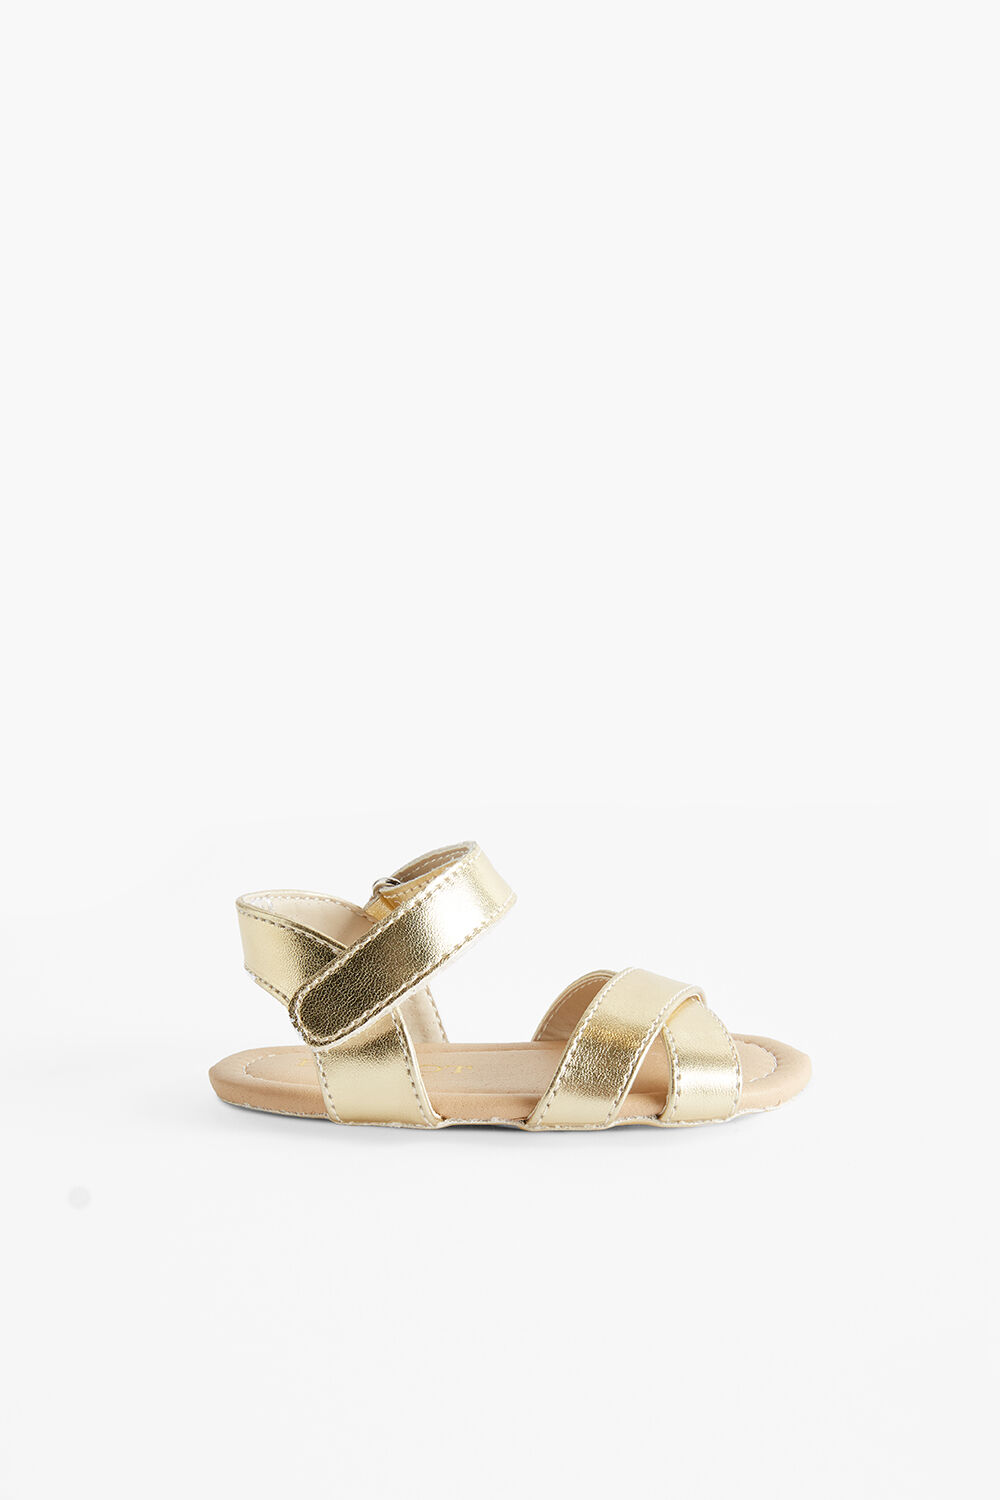 BABY GOLDIE SANDAL in colour GOLD EARTH